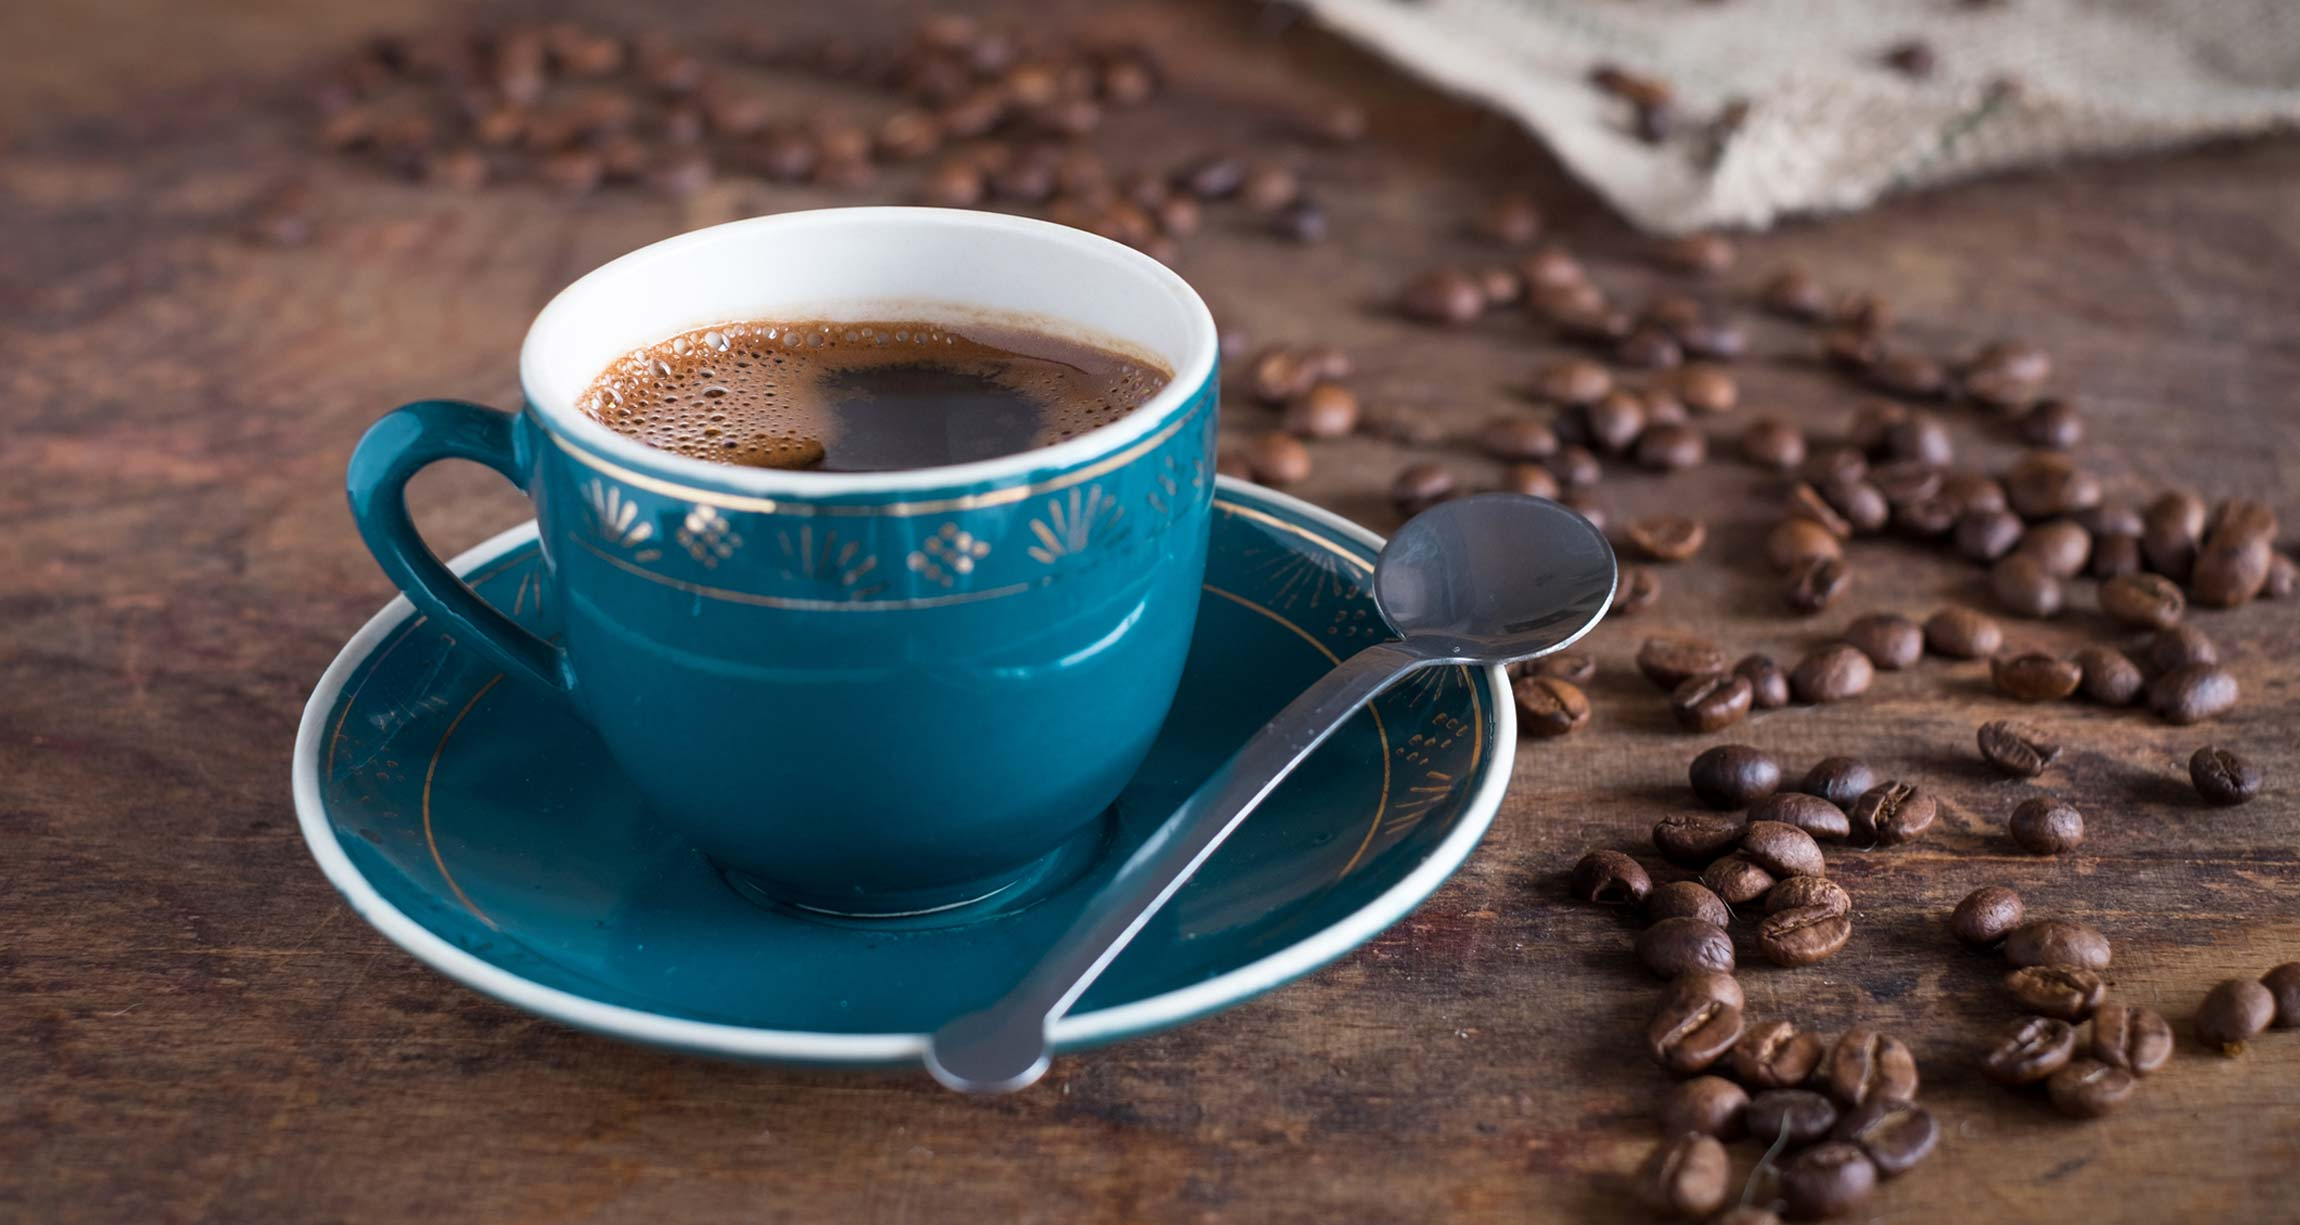 Surprising Reasons Why Coffee May Be A Health Food